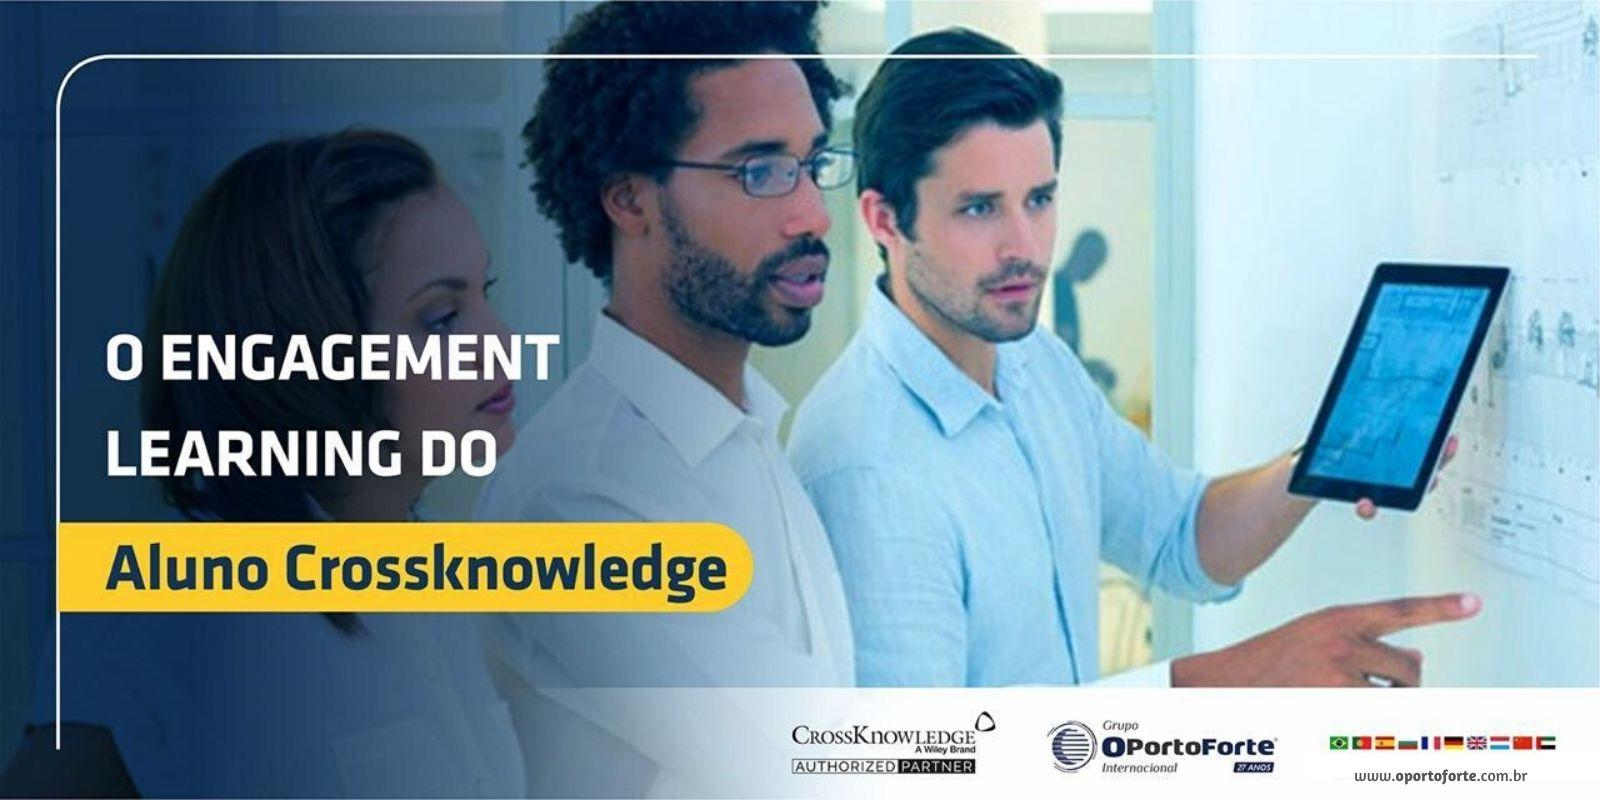 O Engagement learning do aluno Crossknowledge